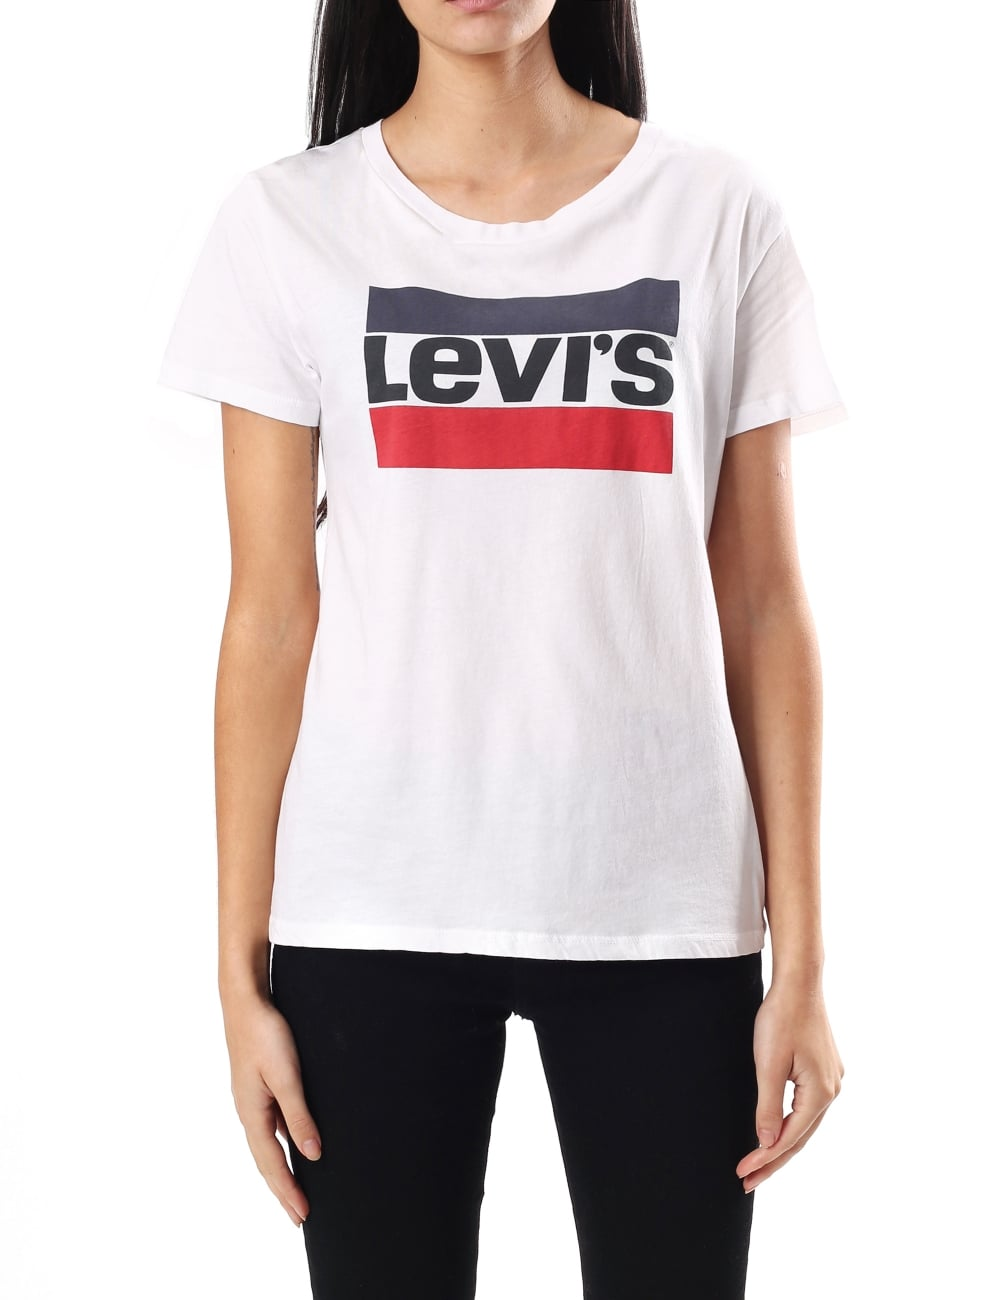 3d3a5e9a Levi's Women's Perfect Graphic Tee